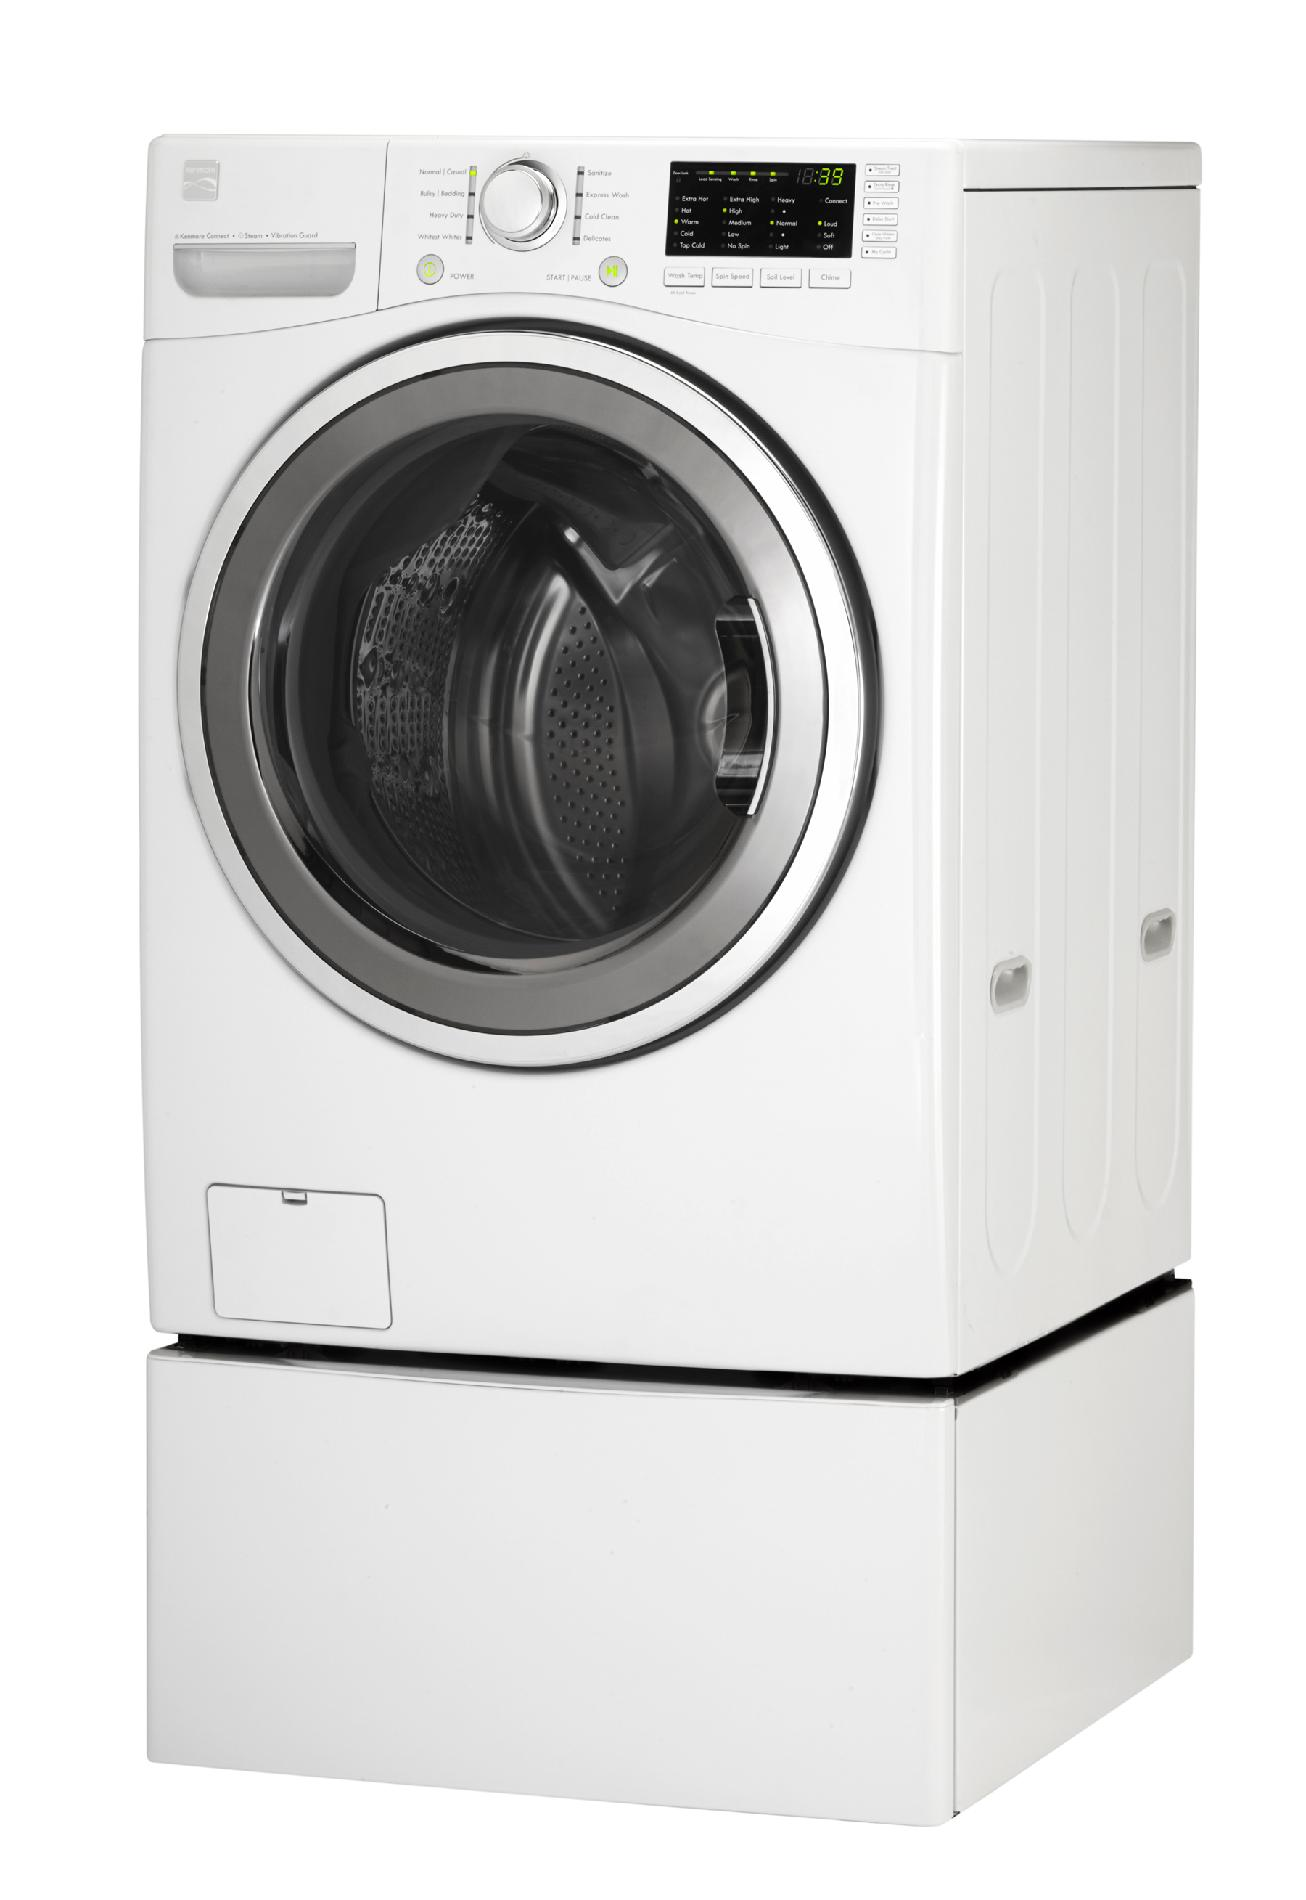 Kenmore 4.0 cu. ft. Front-Load Washer w/ Steam - White